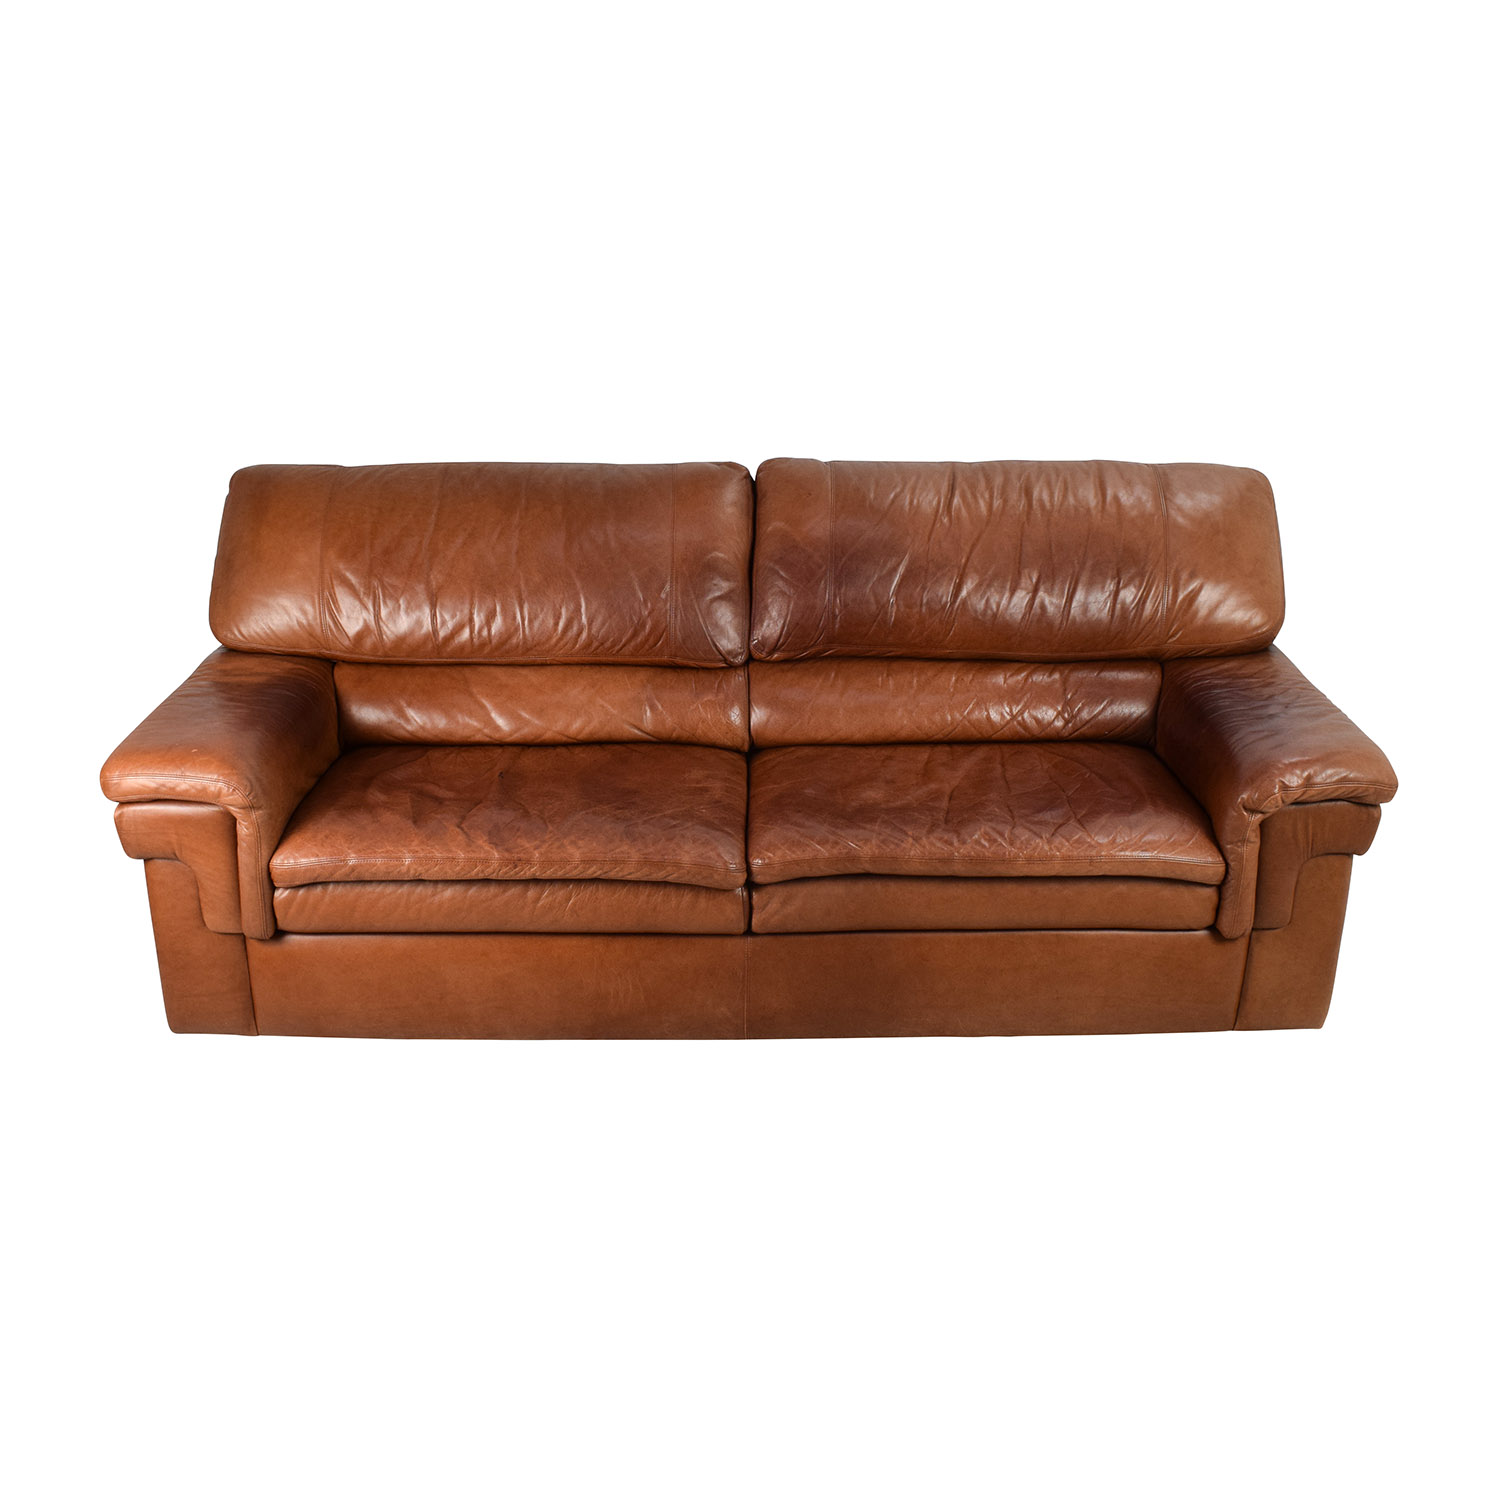 Classic Cherry Brown Leather Sofa